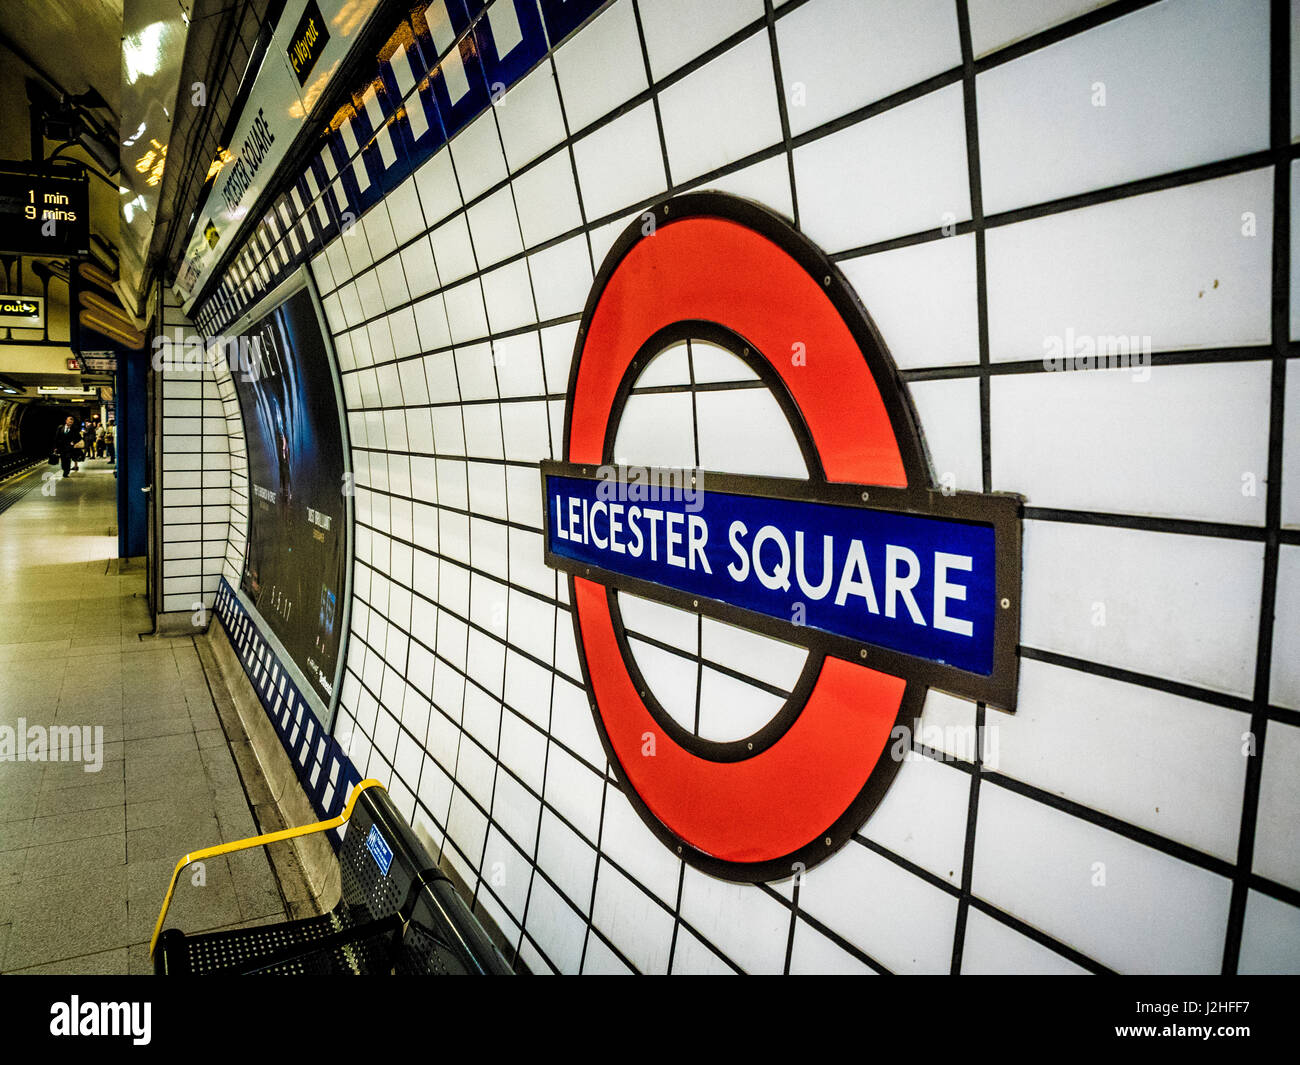 Leicester Square tube station logo on station wall, London, UK. - Stock Image